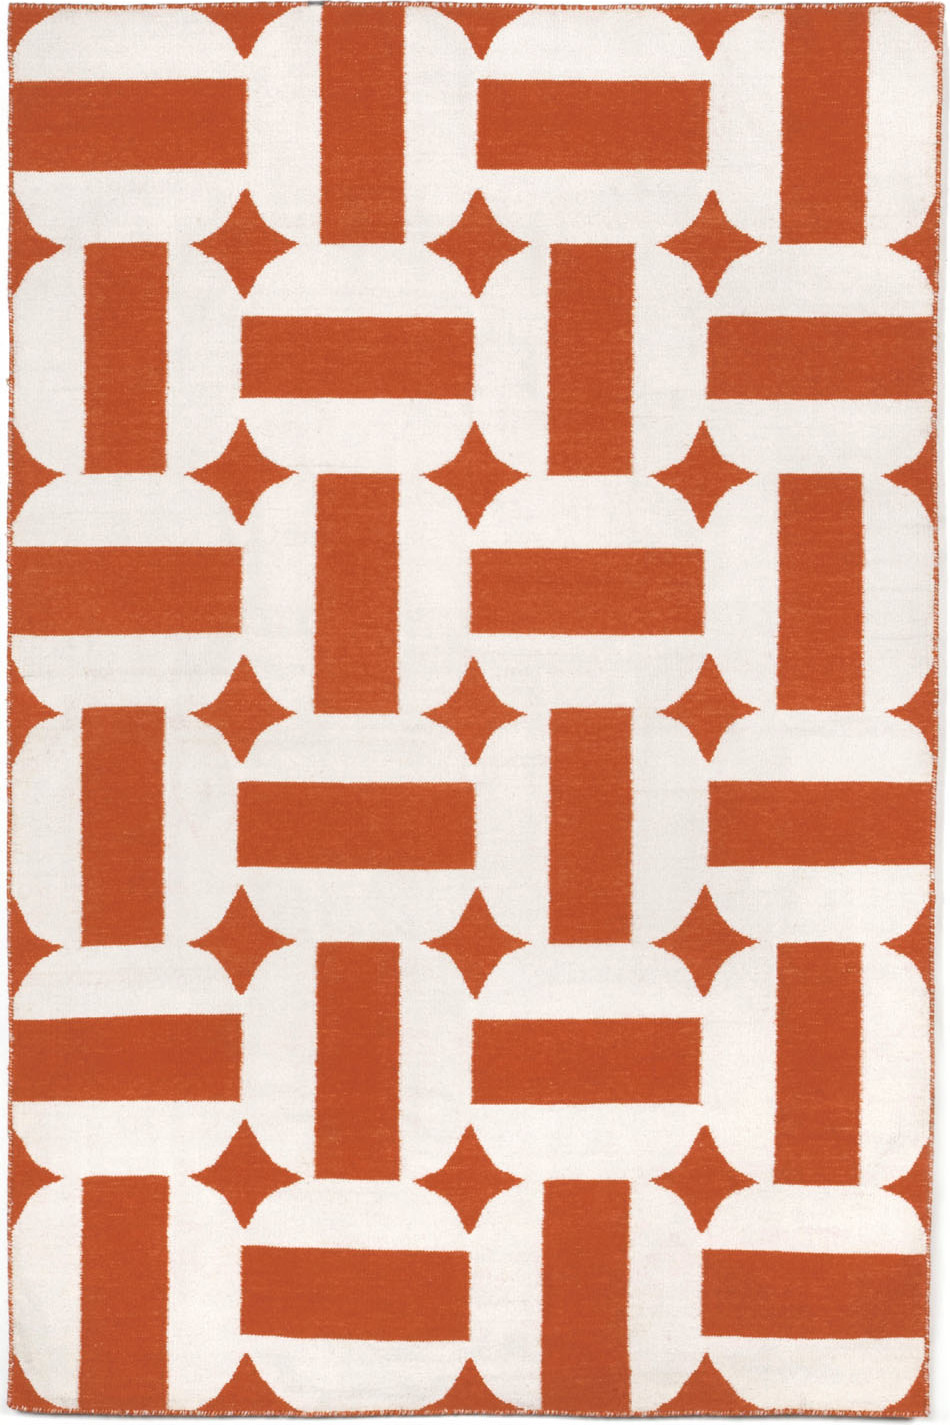 Hand woven assisi circles paprika indoor outdoor area rug 5 ft x 7 ft 6in